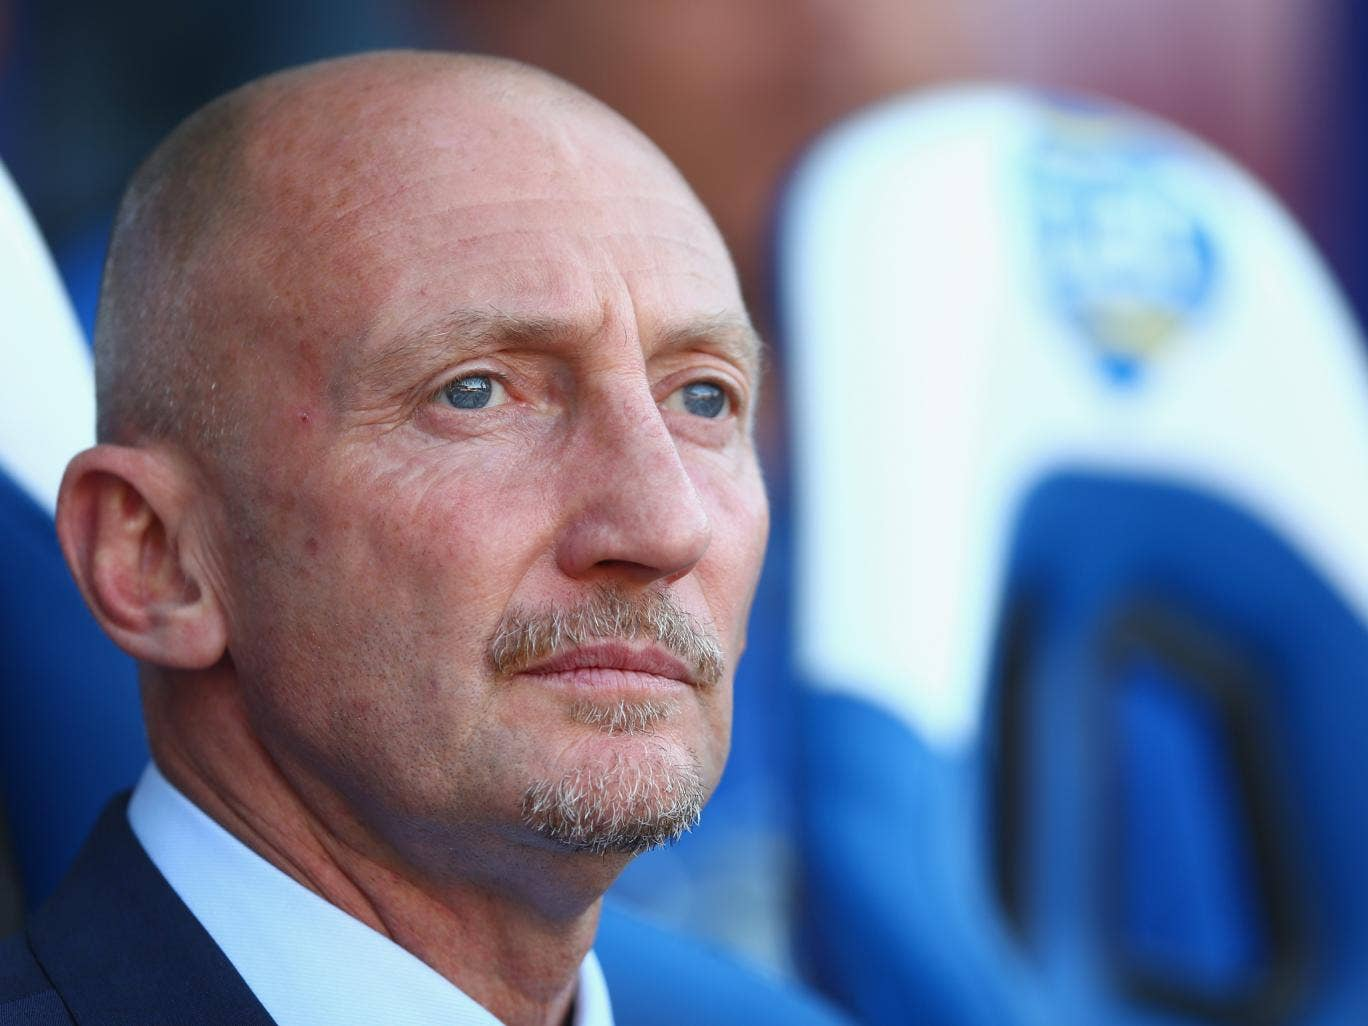 Ian Holloway was forced to watch his side face Manchester United from the stands